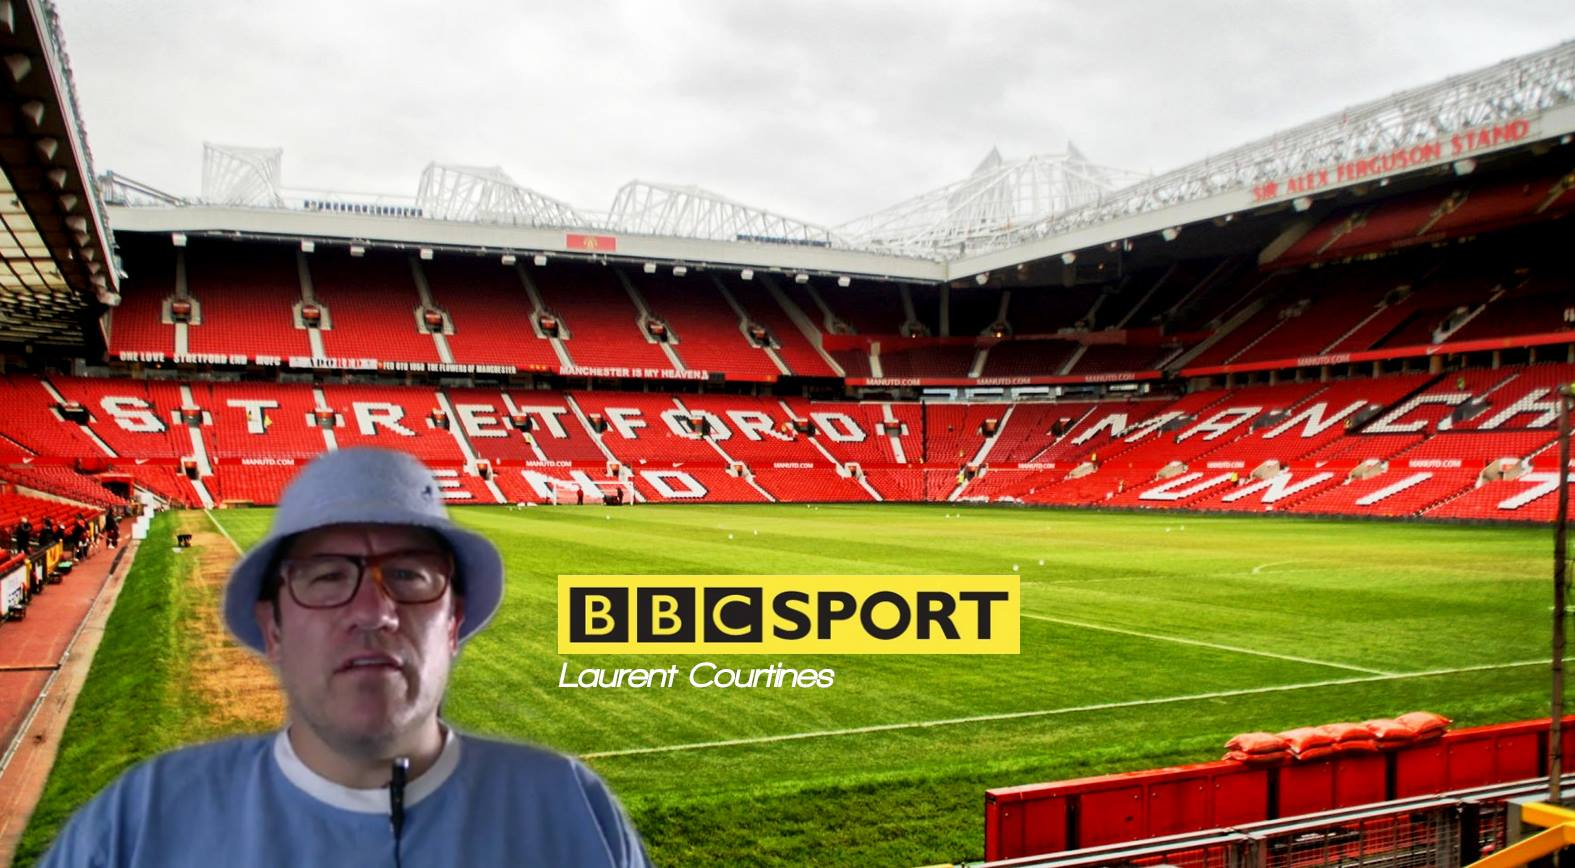 Laurent Courtines fake reporting from Old Trafford for not-the-BBC